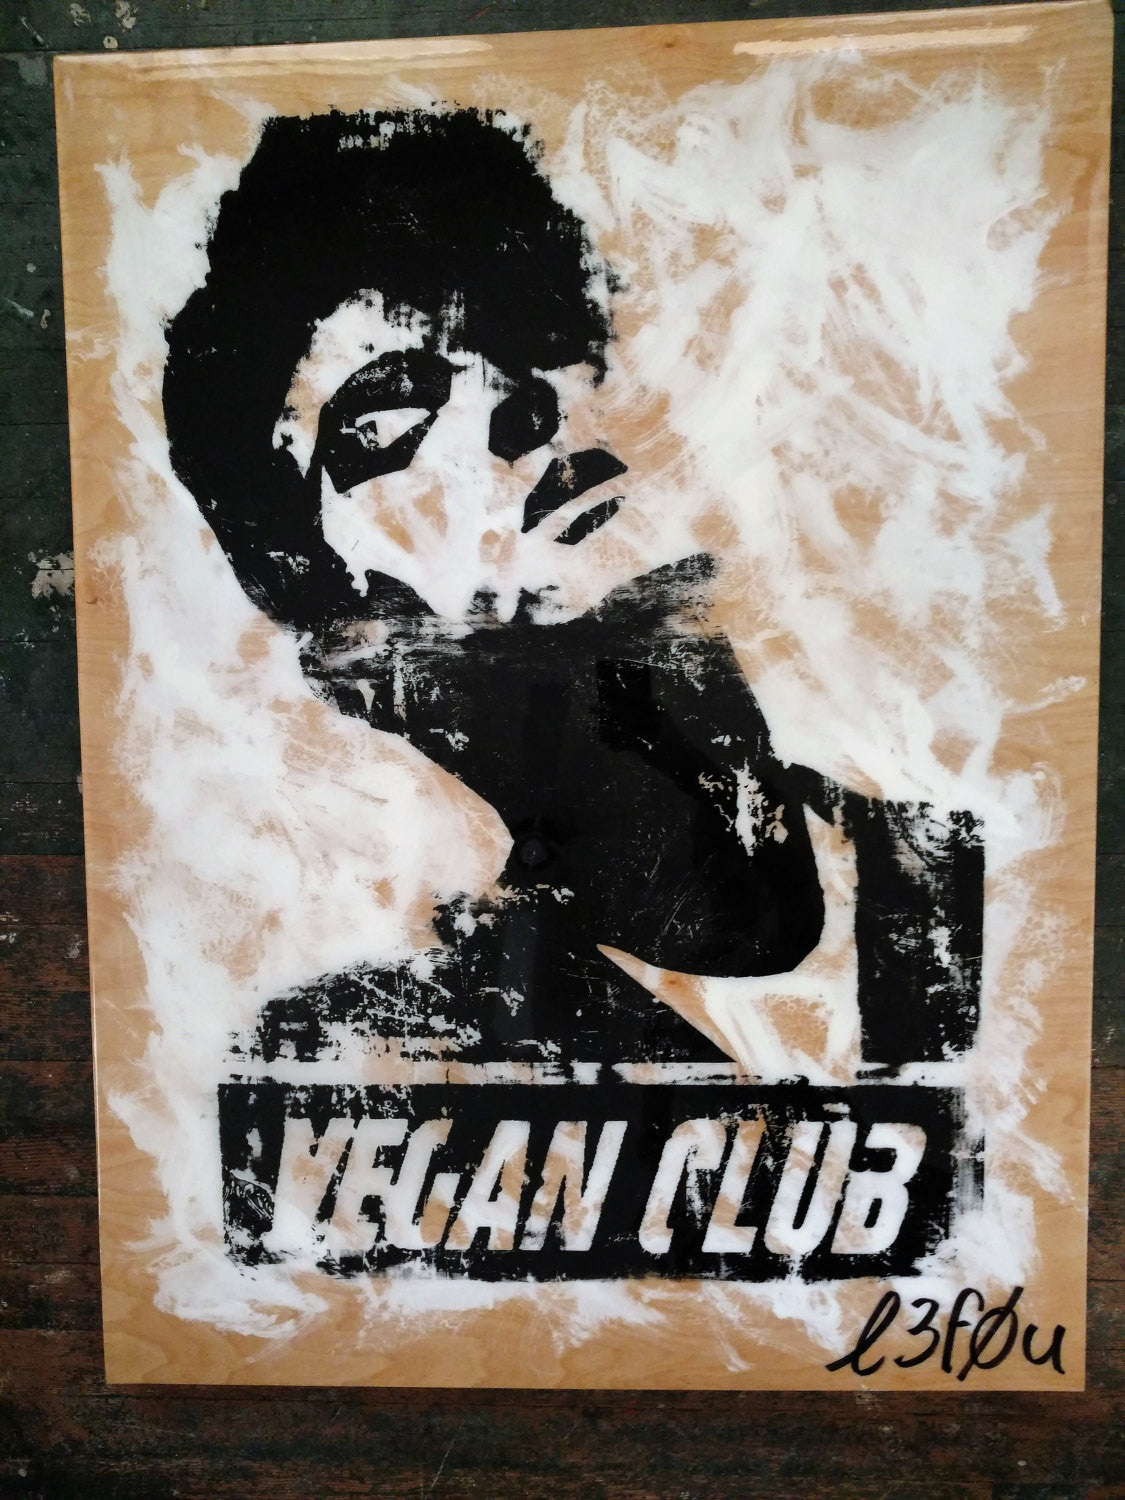 "30x40 Original Artwork ""Vegan Club"" featuring your fav vegan celeb Morrissey signed L3F0u (1 of X)"